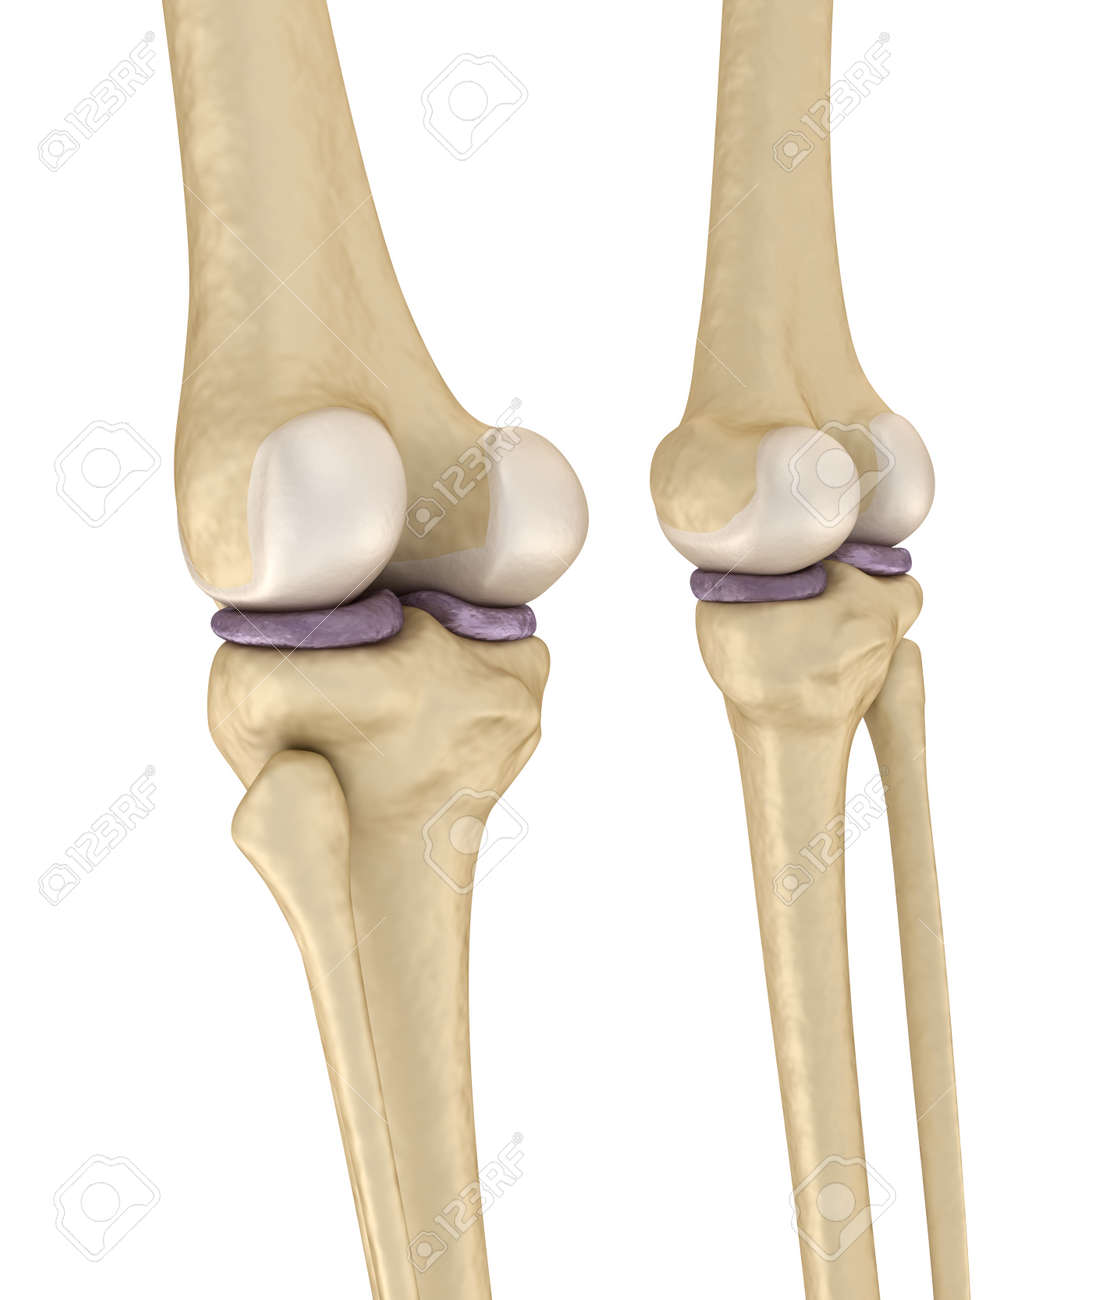 Knee Joint Anatomy Medically Accurate 3d Illustration Stock Photo